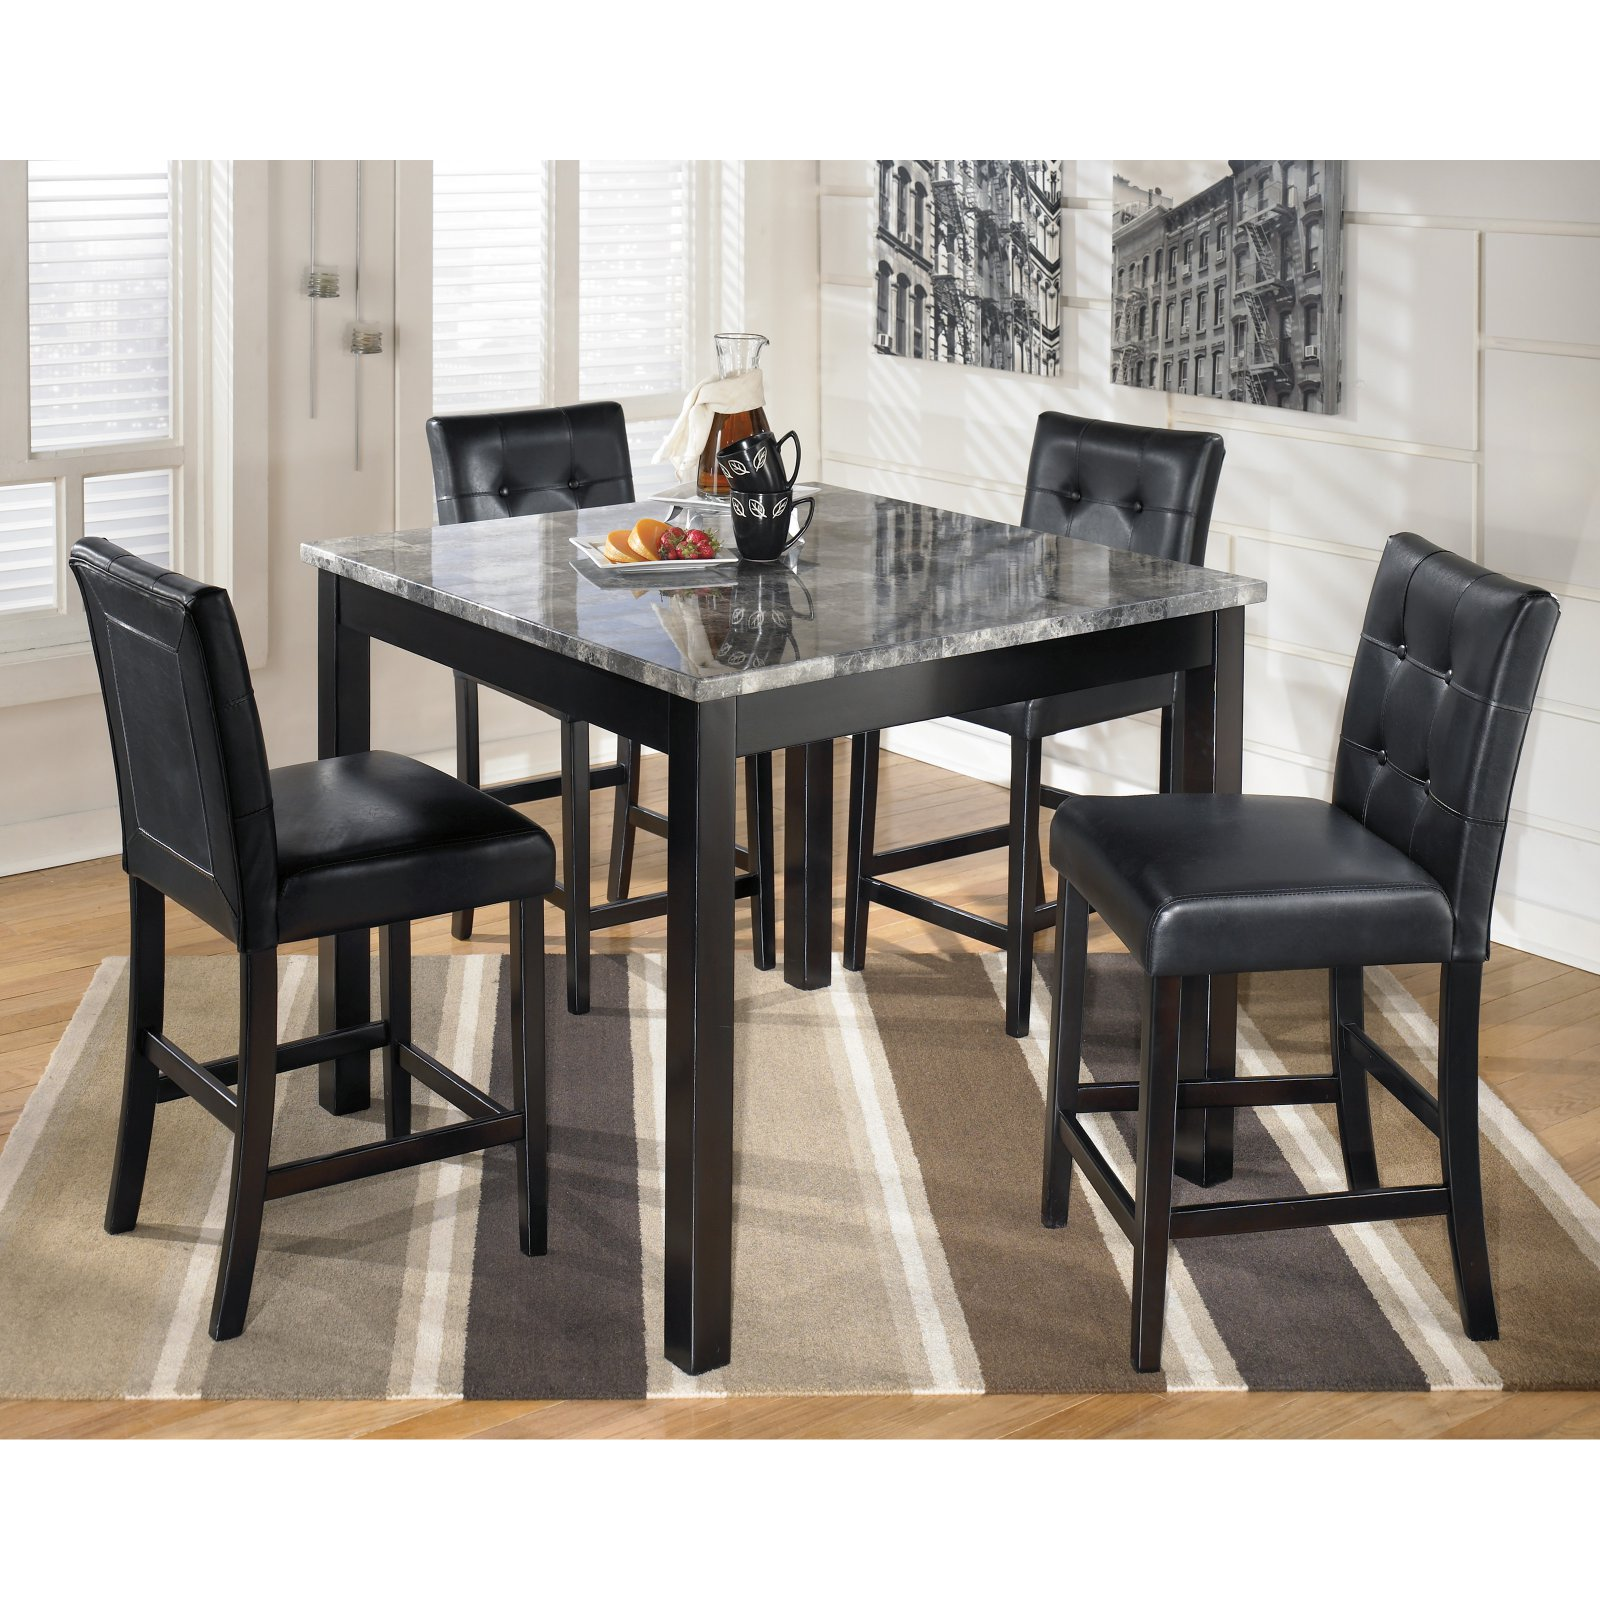 Signature Design by Ashley Furniture Maysville 5-Piece Square Counter Table Set in Black